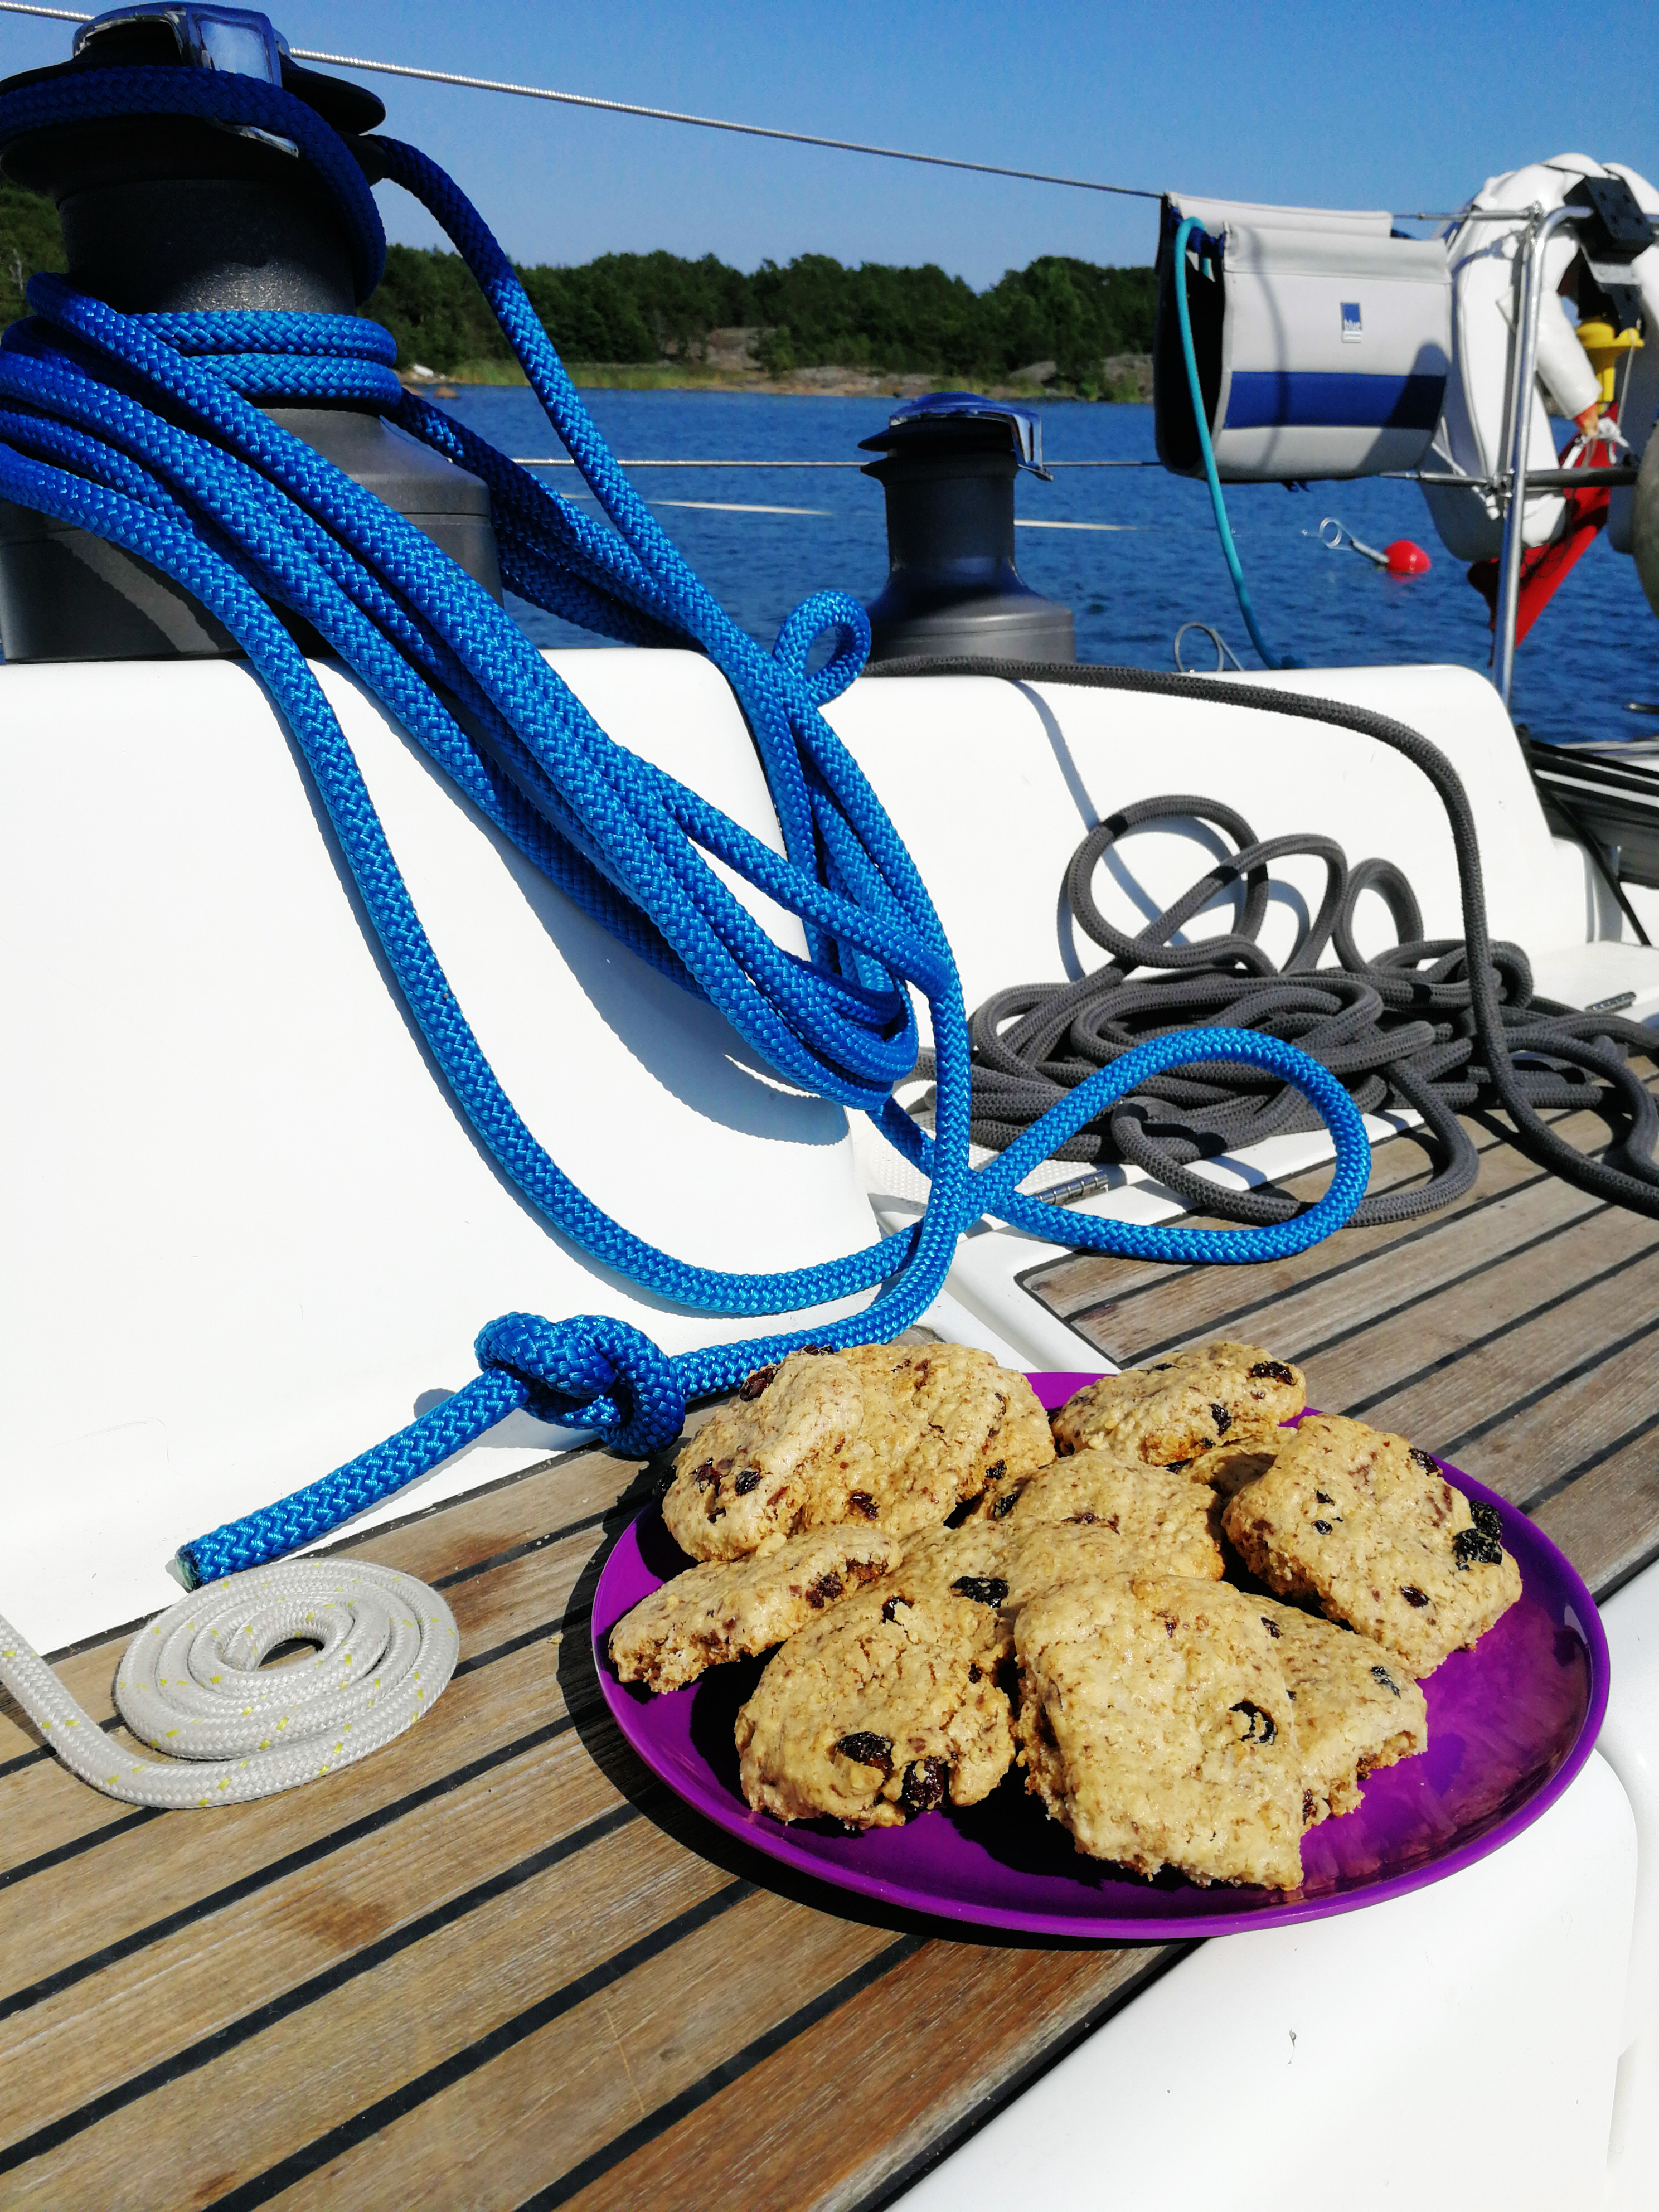 Baked Goods on Board